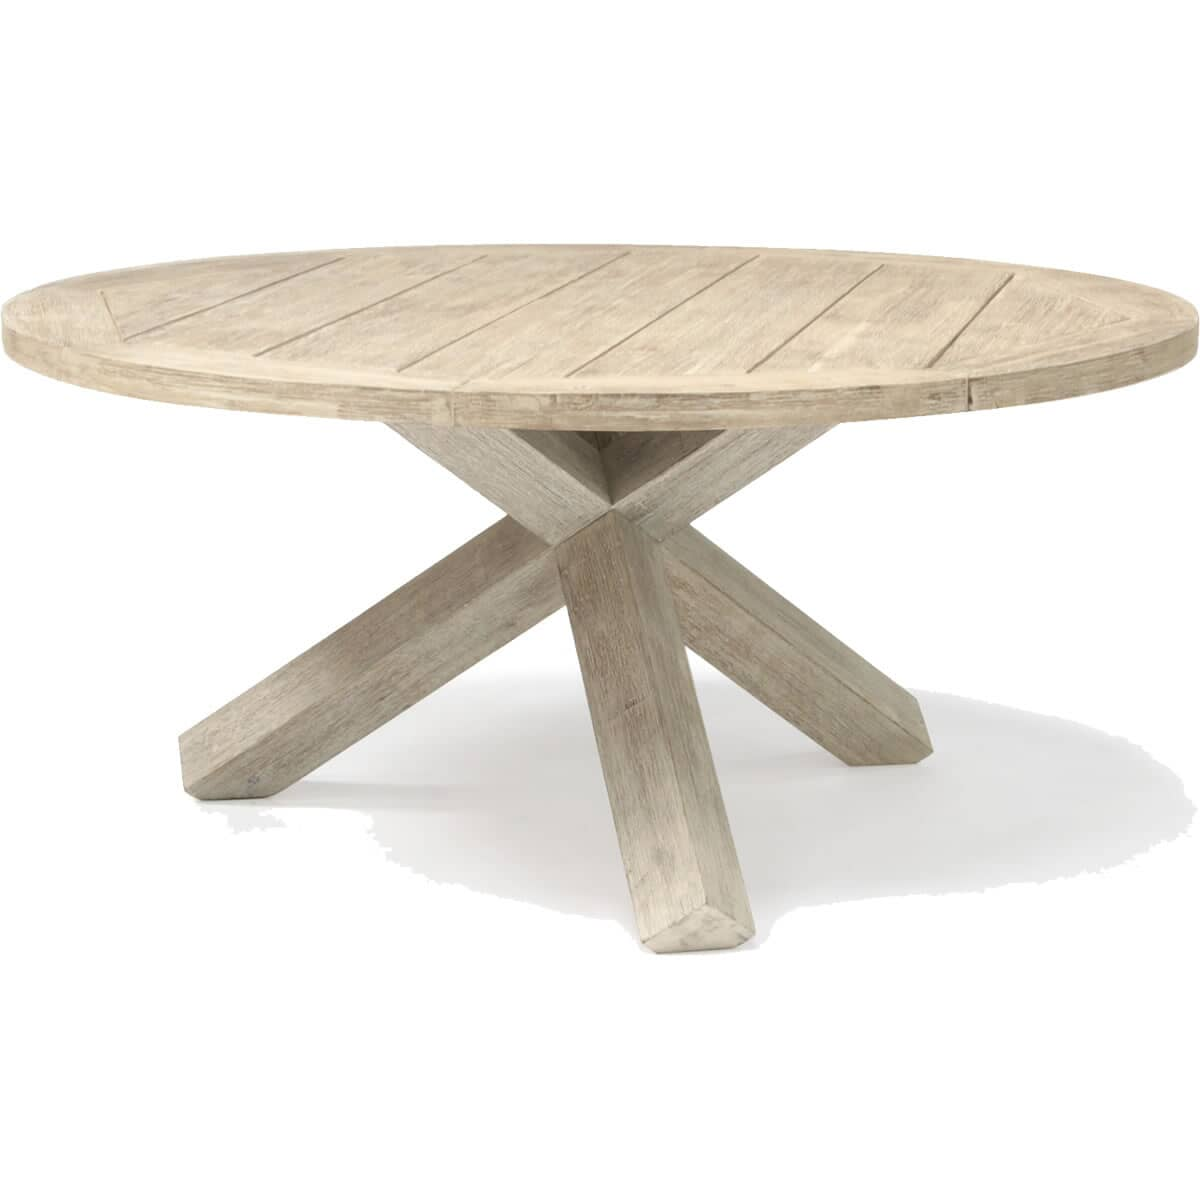 Kettler cora 150cm round dining table huc28081 for Table kettler